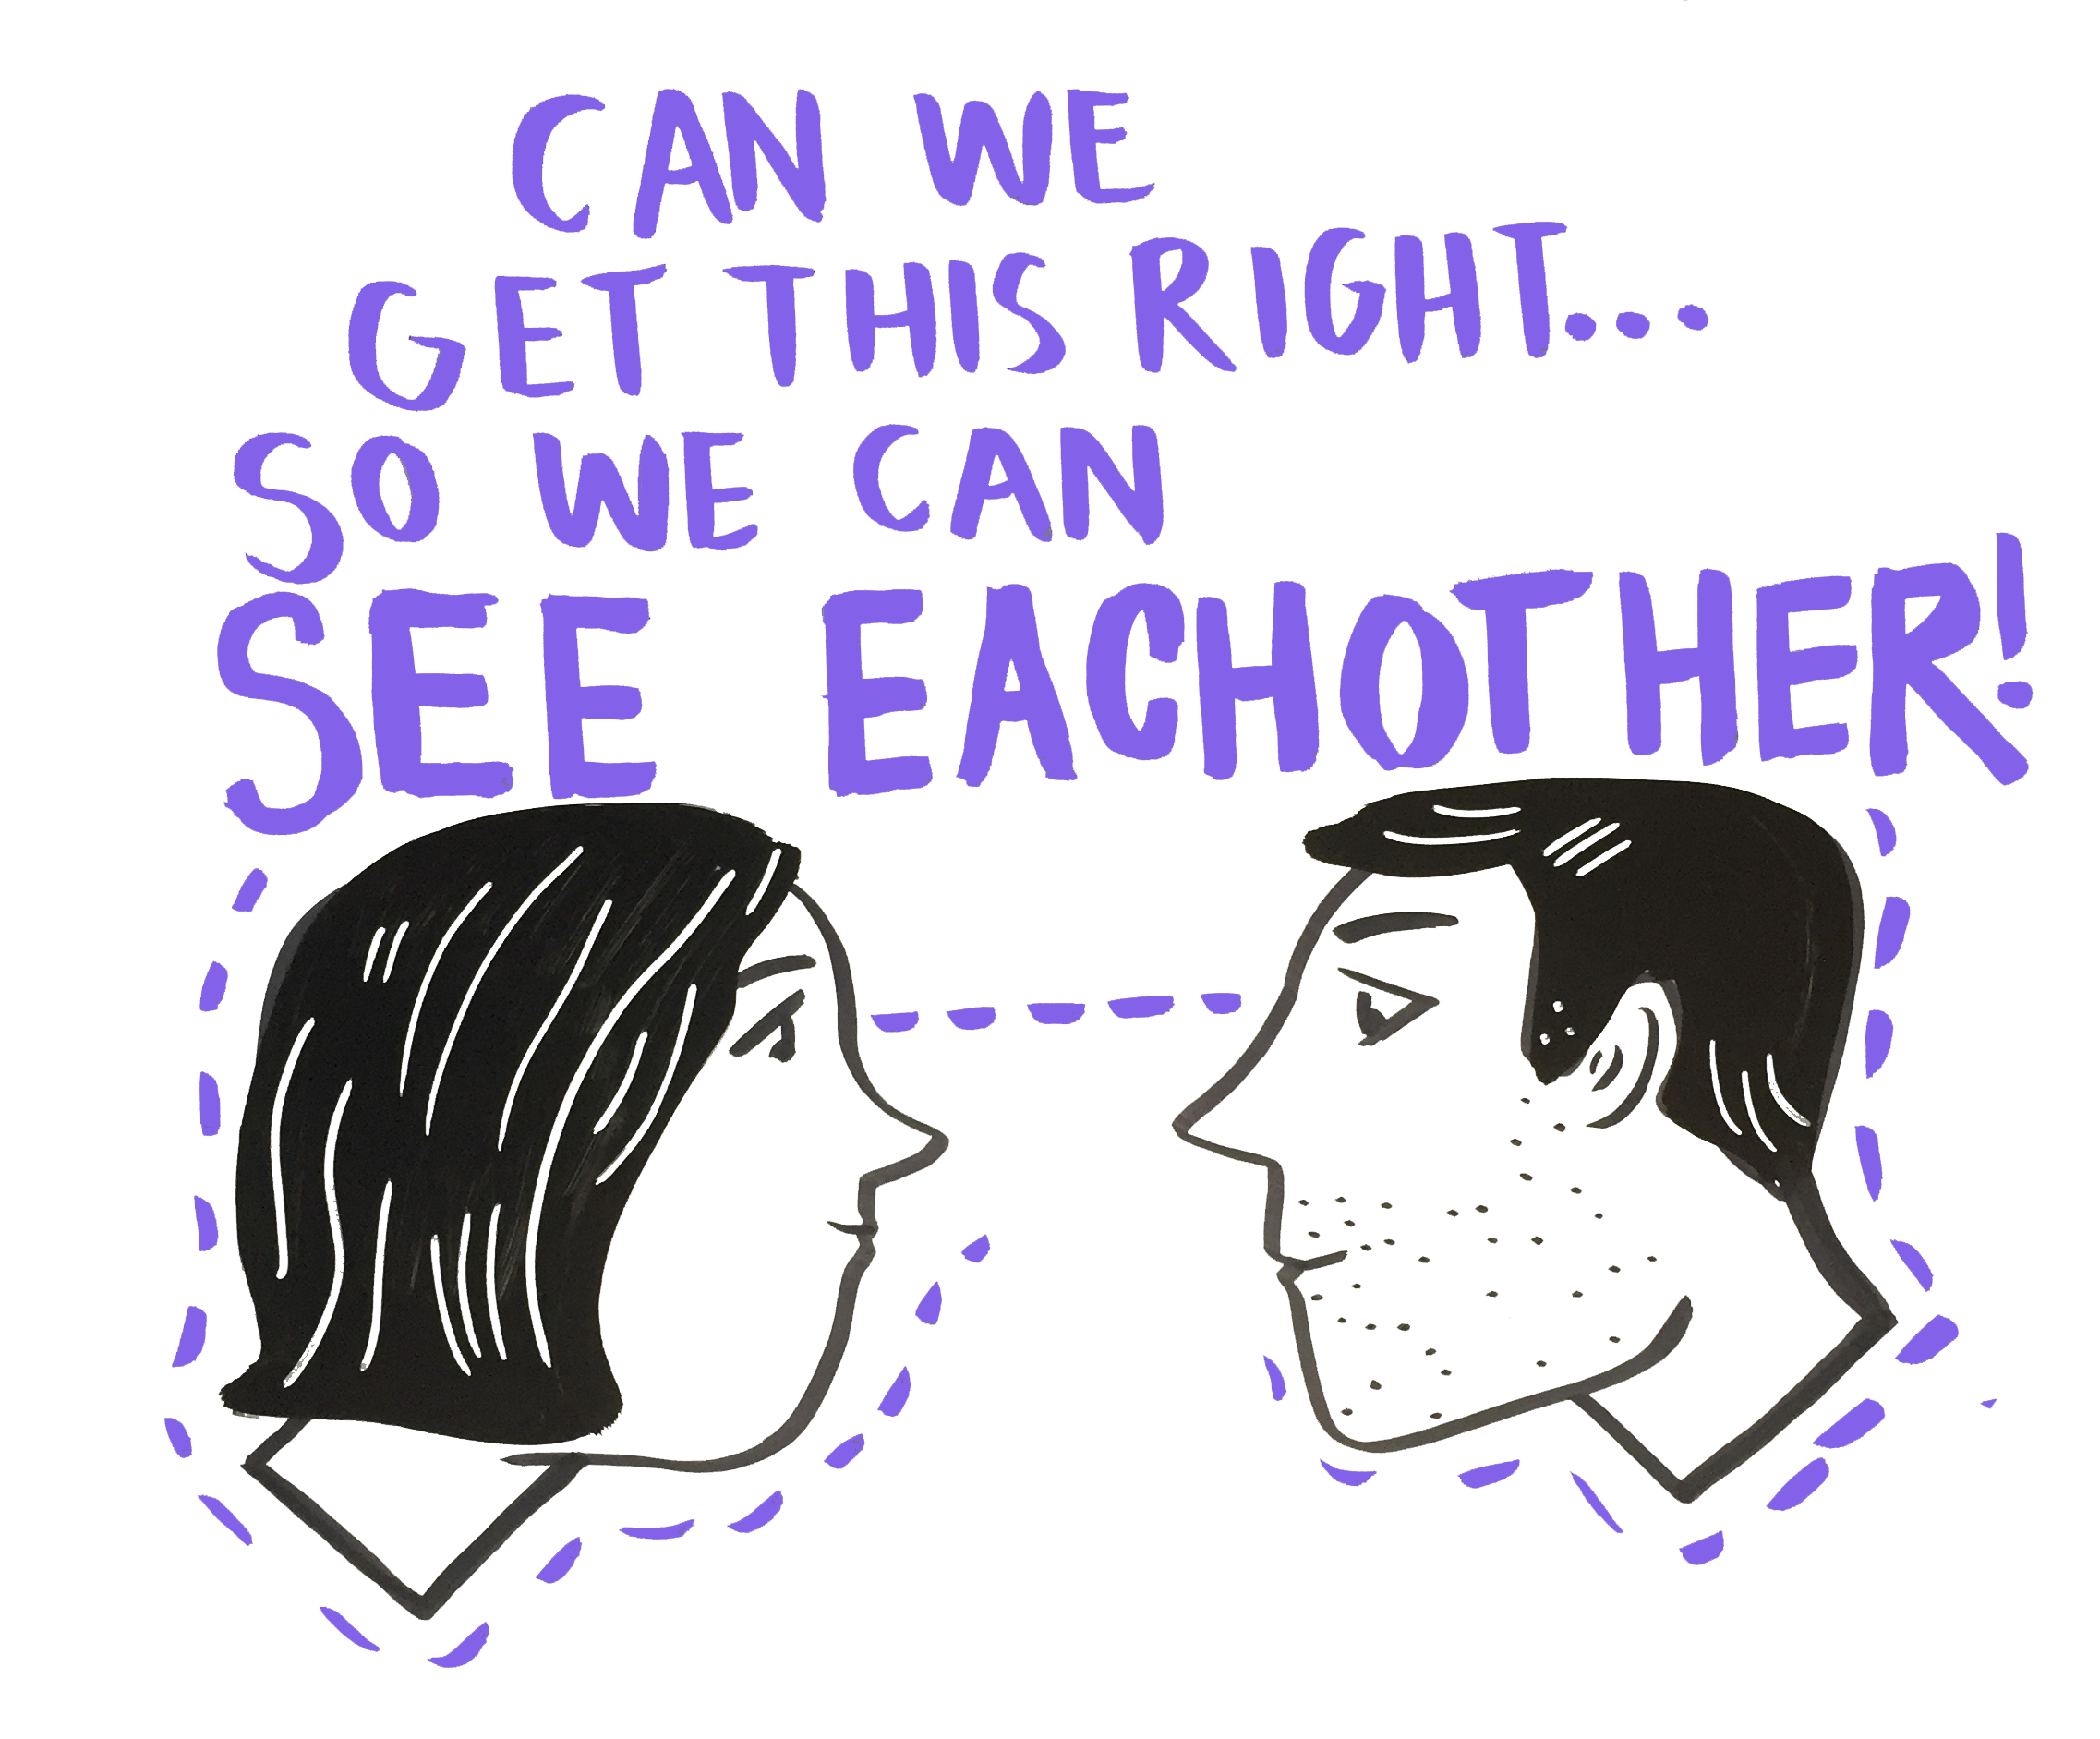 see eachother.jpg